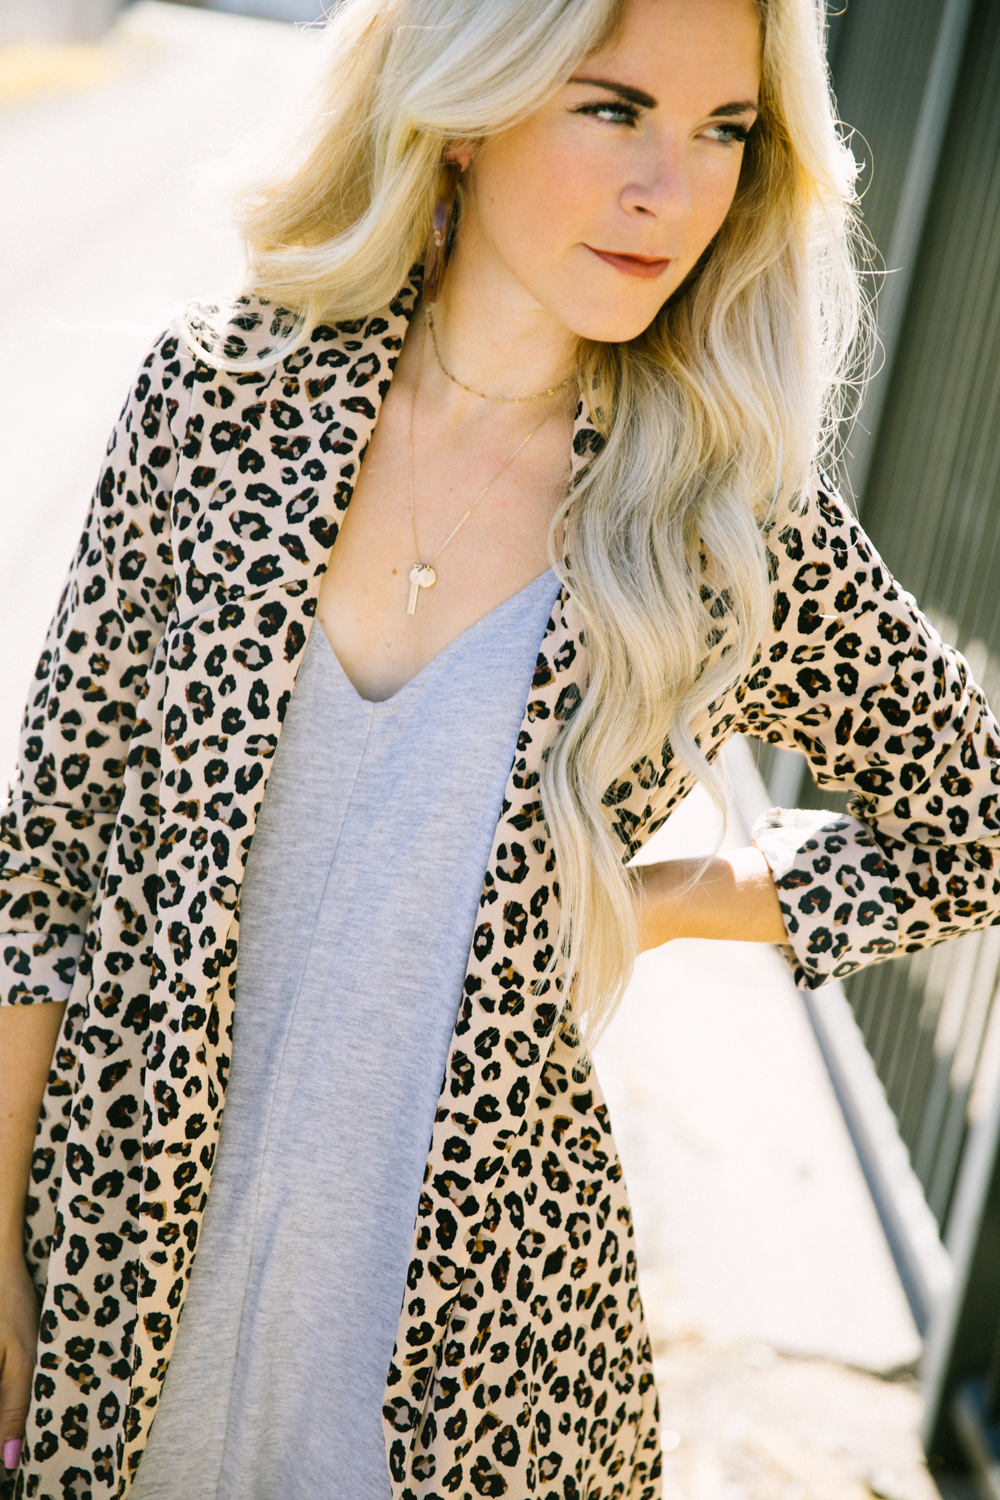 Top Las Vegas fashion blog, Life of a Sister, shares their tips on how to style your Shopbop Romper: image of a woman wearing a leopard print blazer, Sam Edelman pink pumps and a Shopbop grey romper